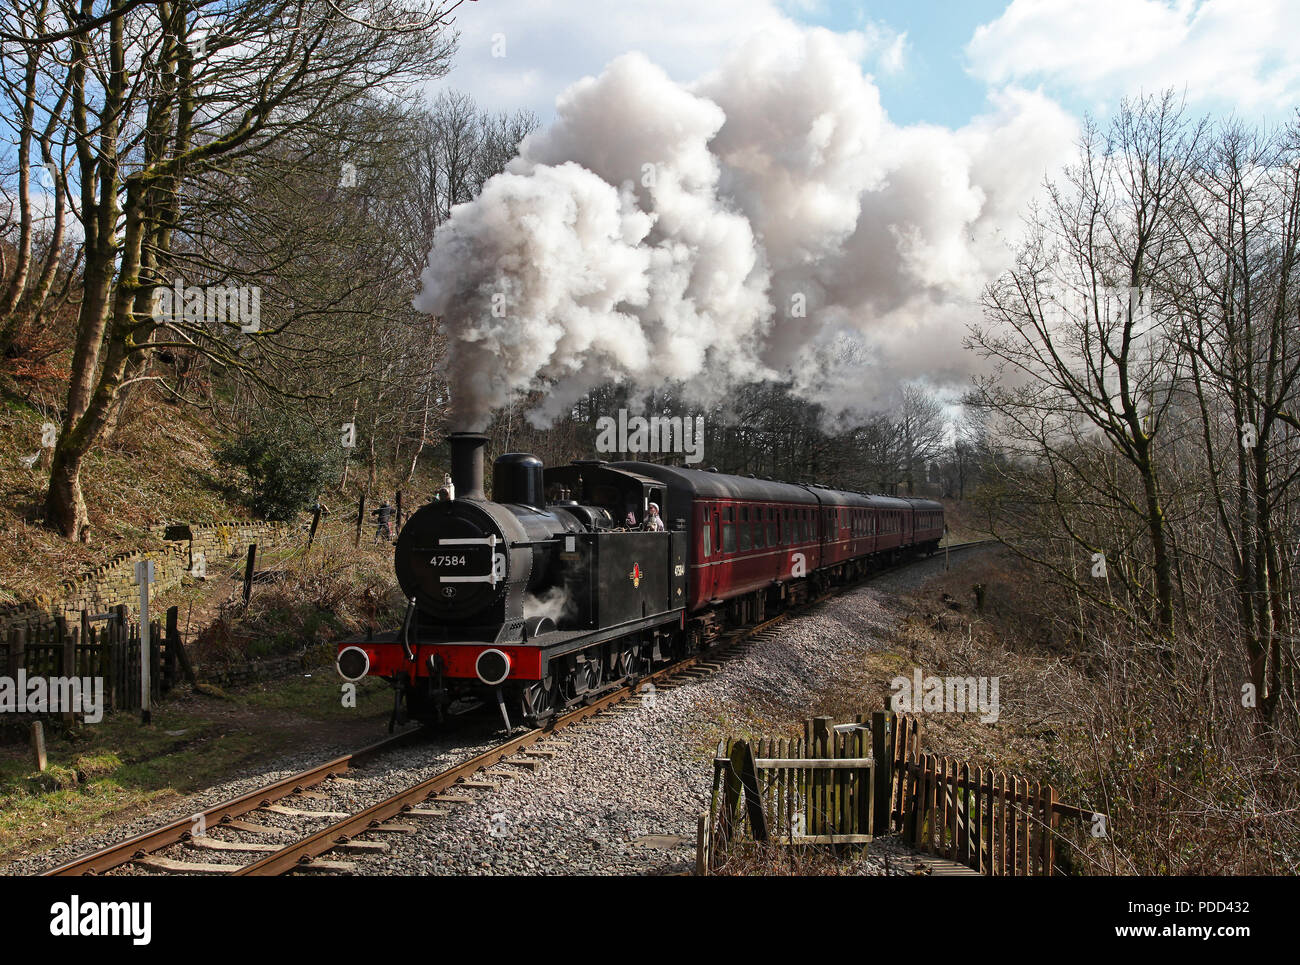 47584 passes Summerseat on the East Lancs Railway 29.3.13 - Stock Image